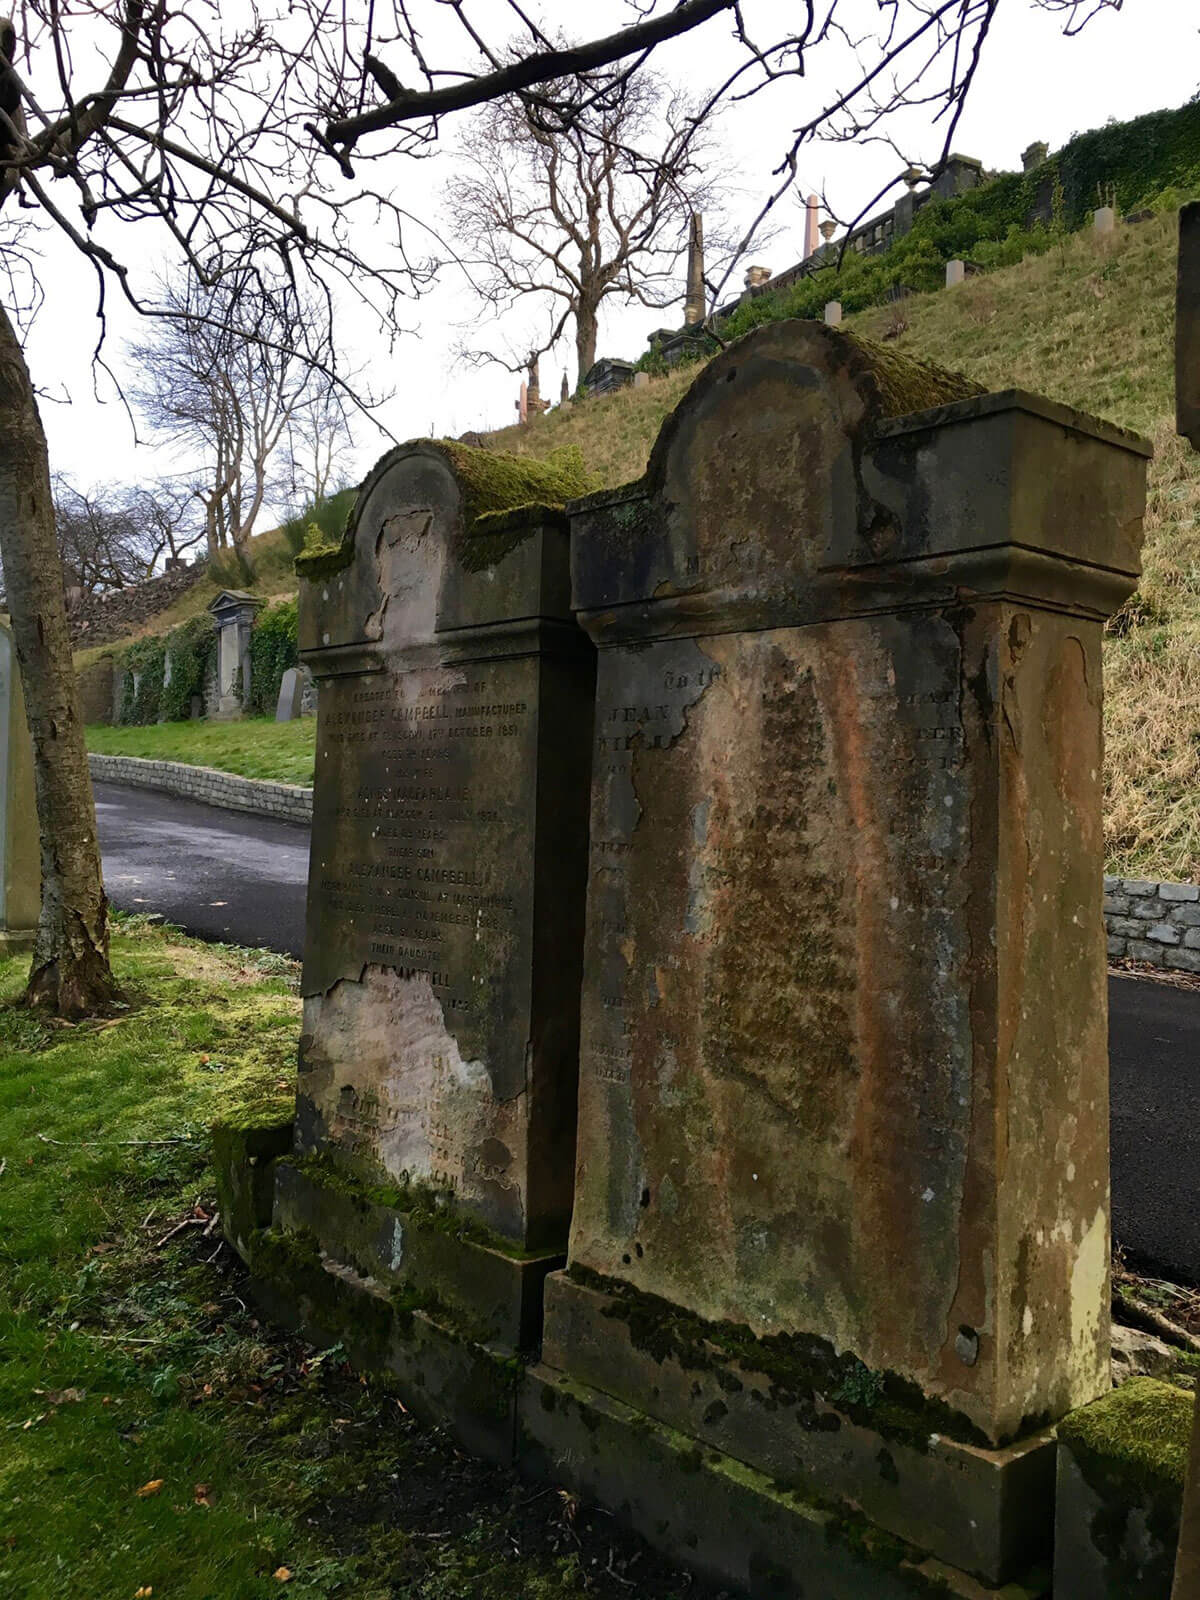 Two mossy graves that are weathered, aged and hard to read in Glasgow Necropolis. Overcast sky with more graves and tombstones and autumn trees with no leaves behind the two graves that sit next to each other.